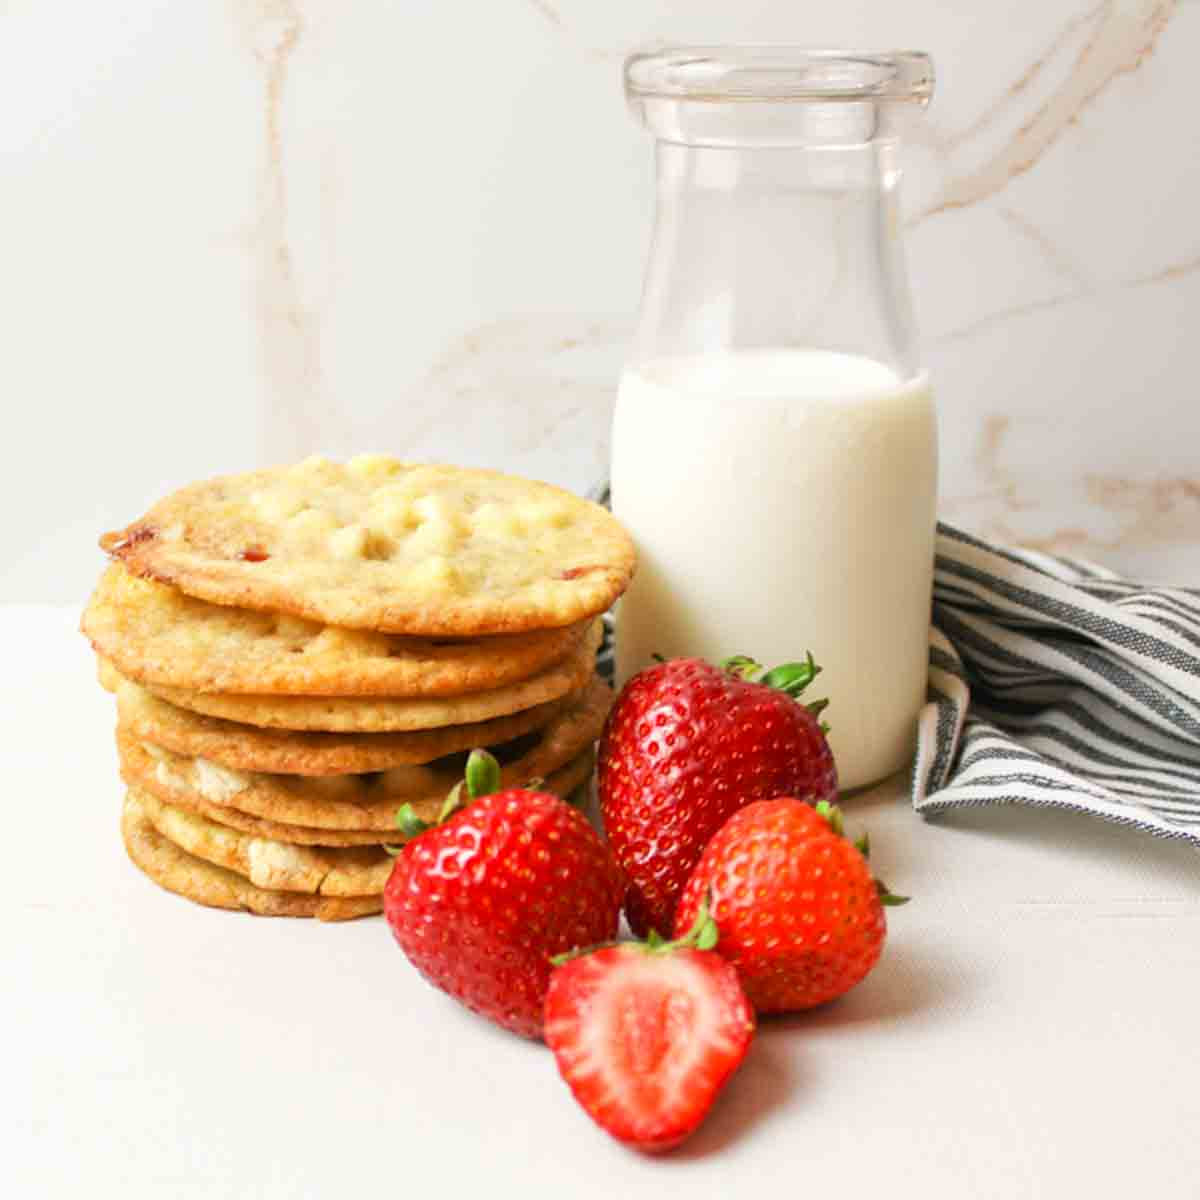 a close up of a stack of strawberries and cream cookies with fresh strawberries and a bottle of milk to the side